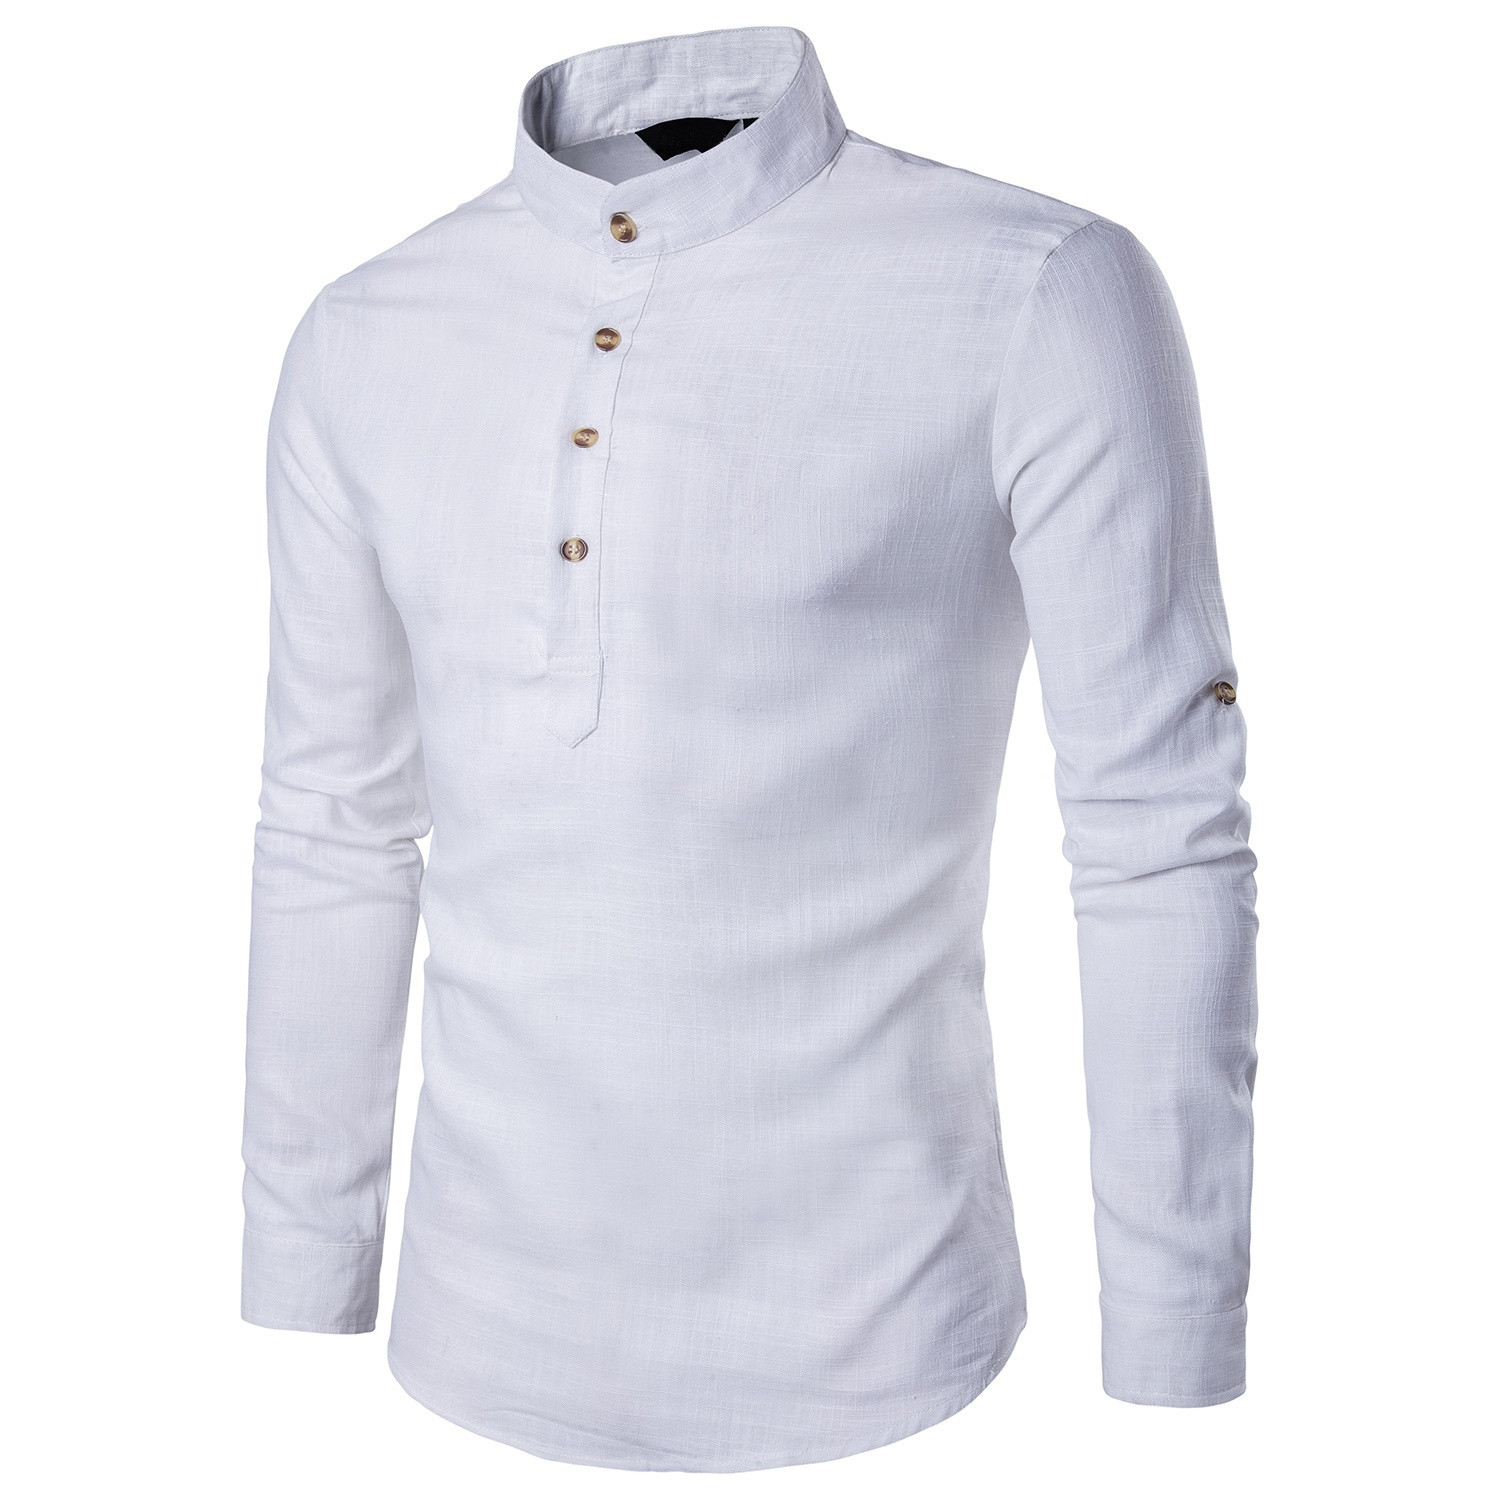 Zogaa Men Business Formal Shirt Long Sleeve Slim Pure Color White Shirt 2019 New Fashions Stand Collar Mens Shirts 6 Color